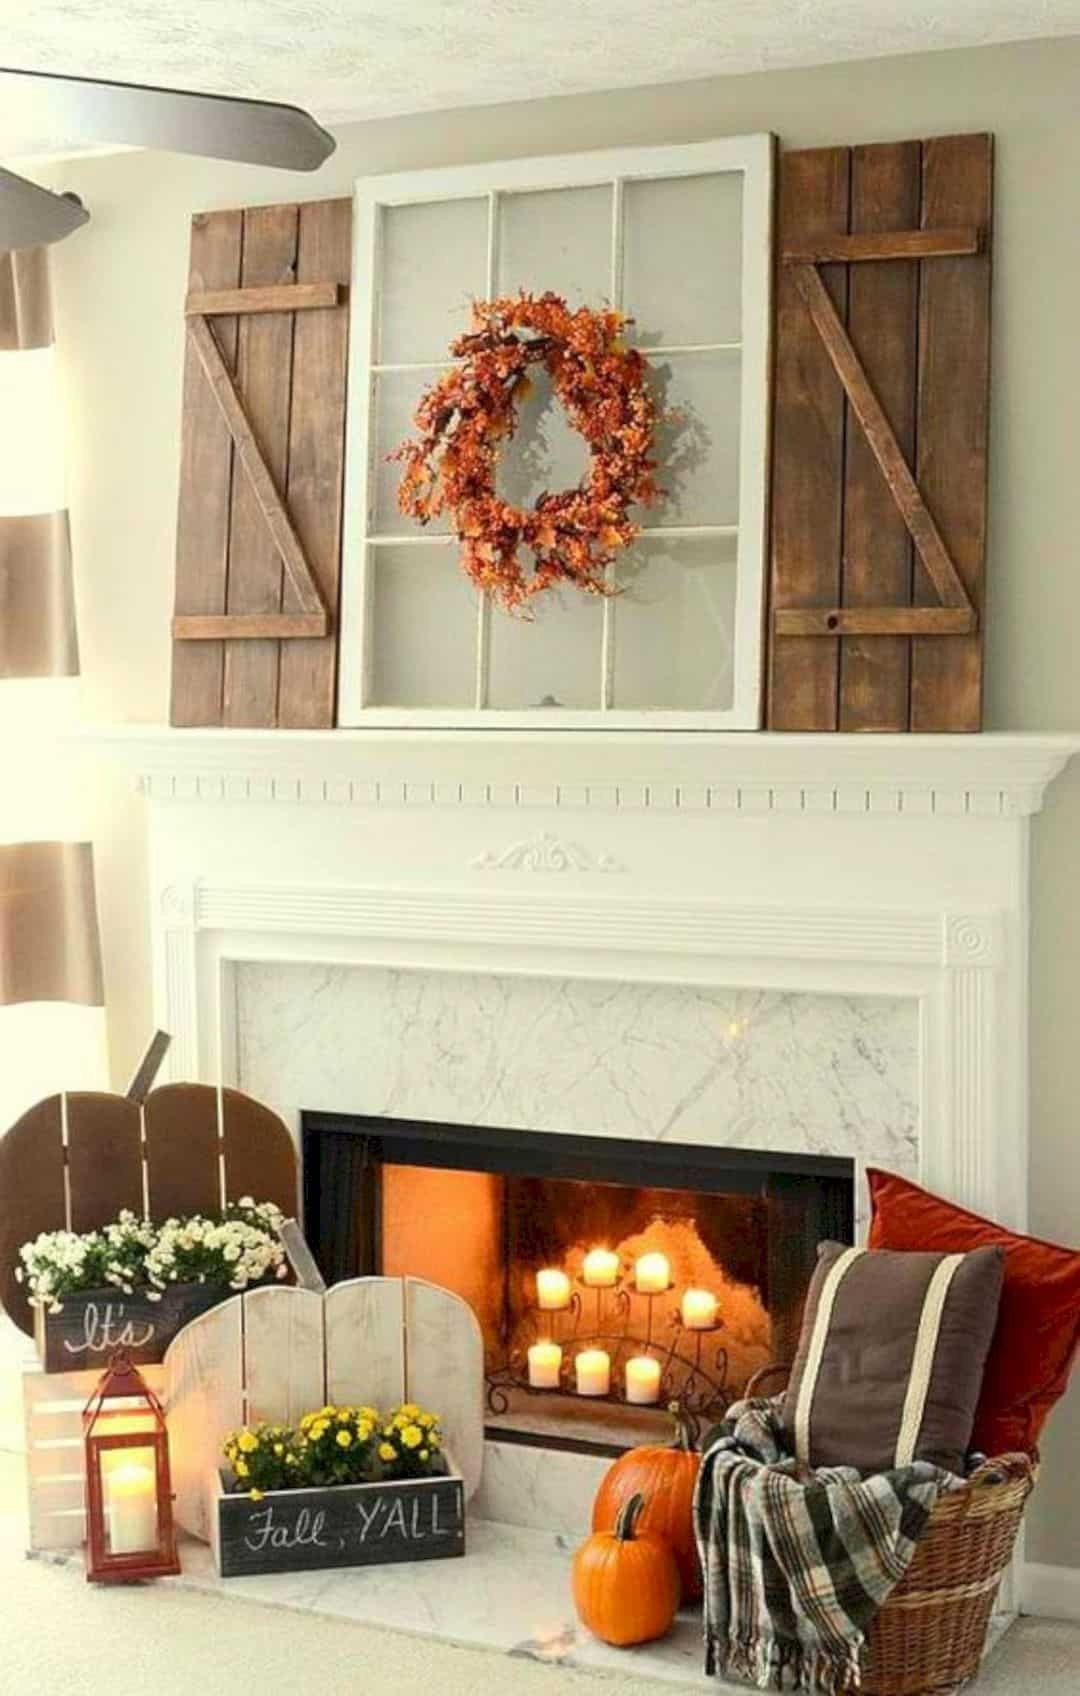 Diy Rustic Living Room Decor Awesome 17 Diy Rustic Home Decor Ideas for Living Room